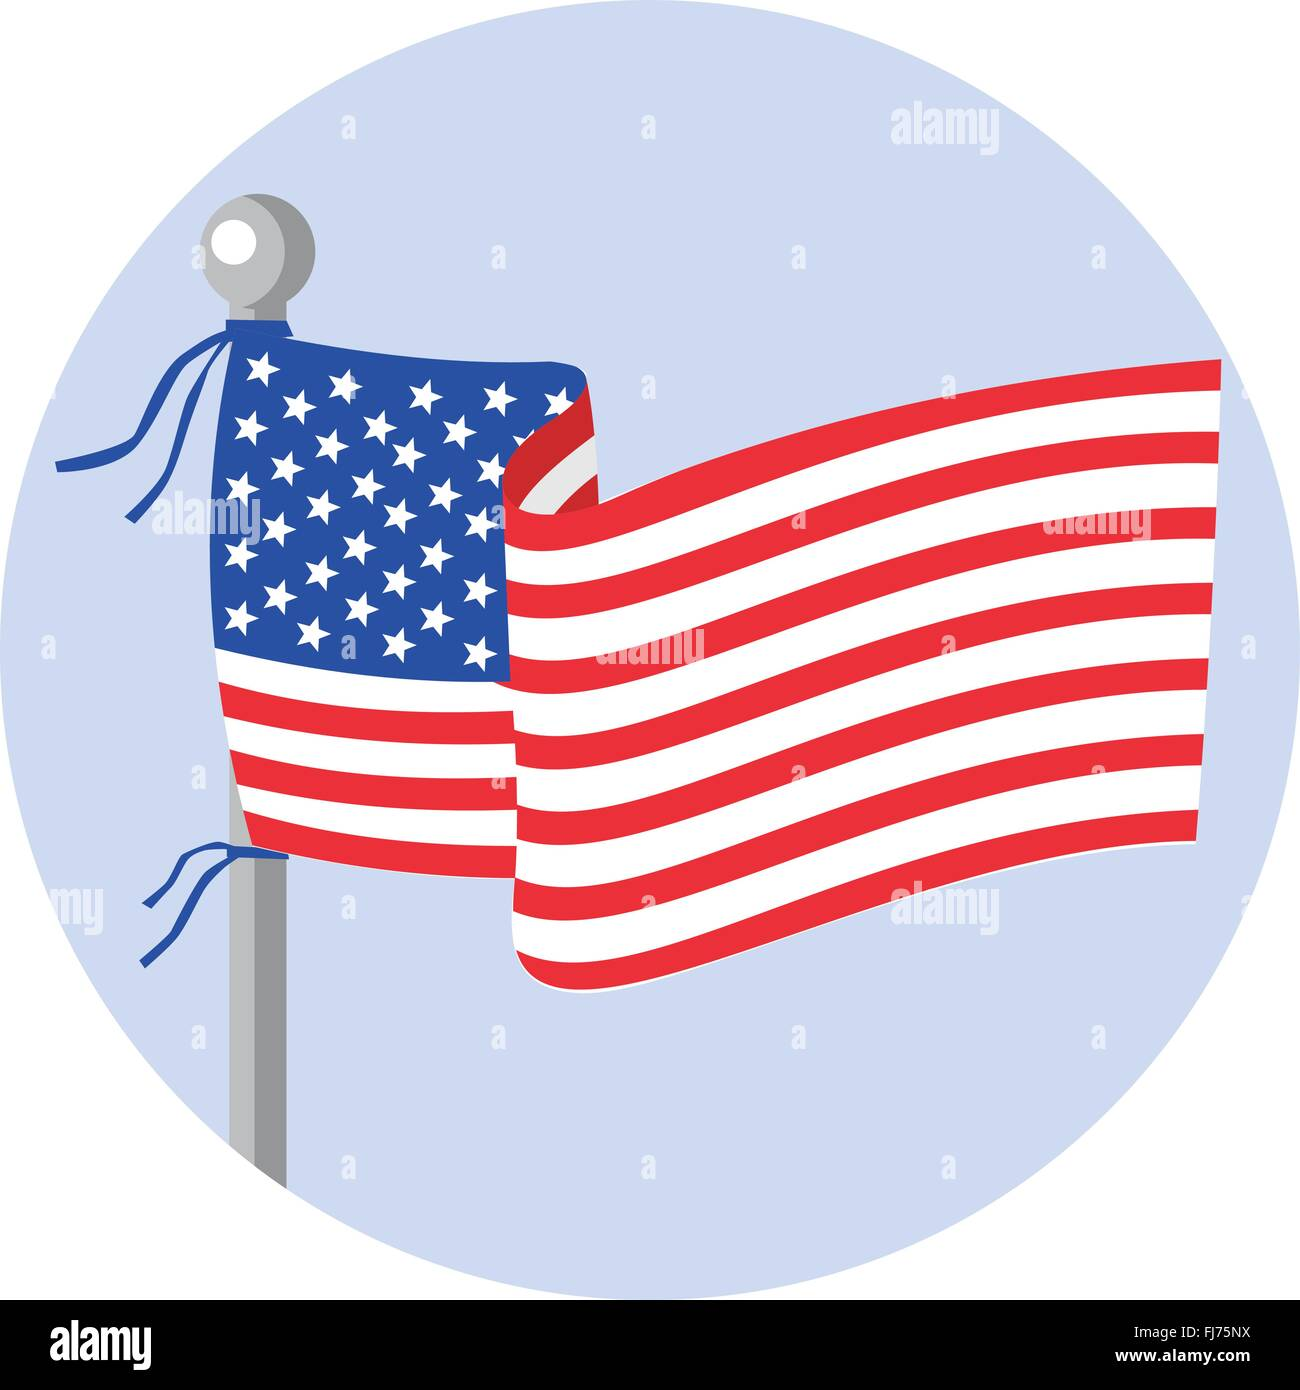 Illustration of usa american stars and stripes flag on flagpole set inside circle done in cartoon style. - Stock Vector